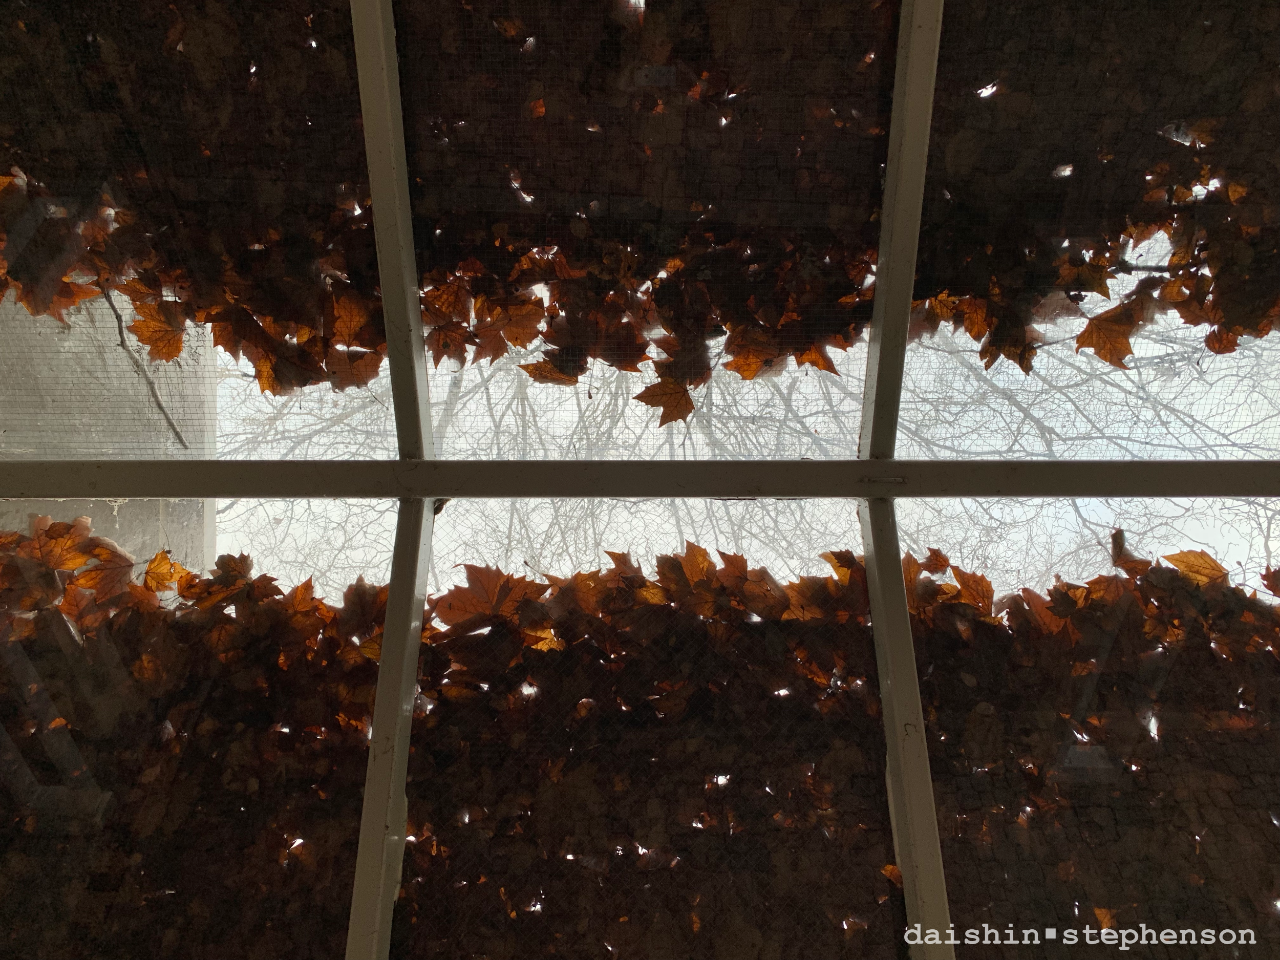 fallen leaves caught on outdoor glass-covered walkway roof